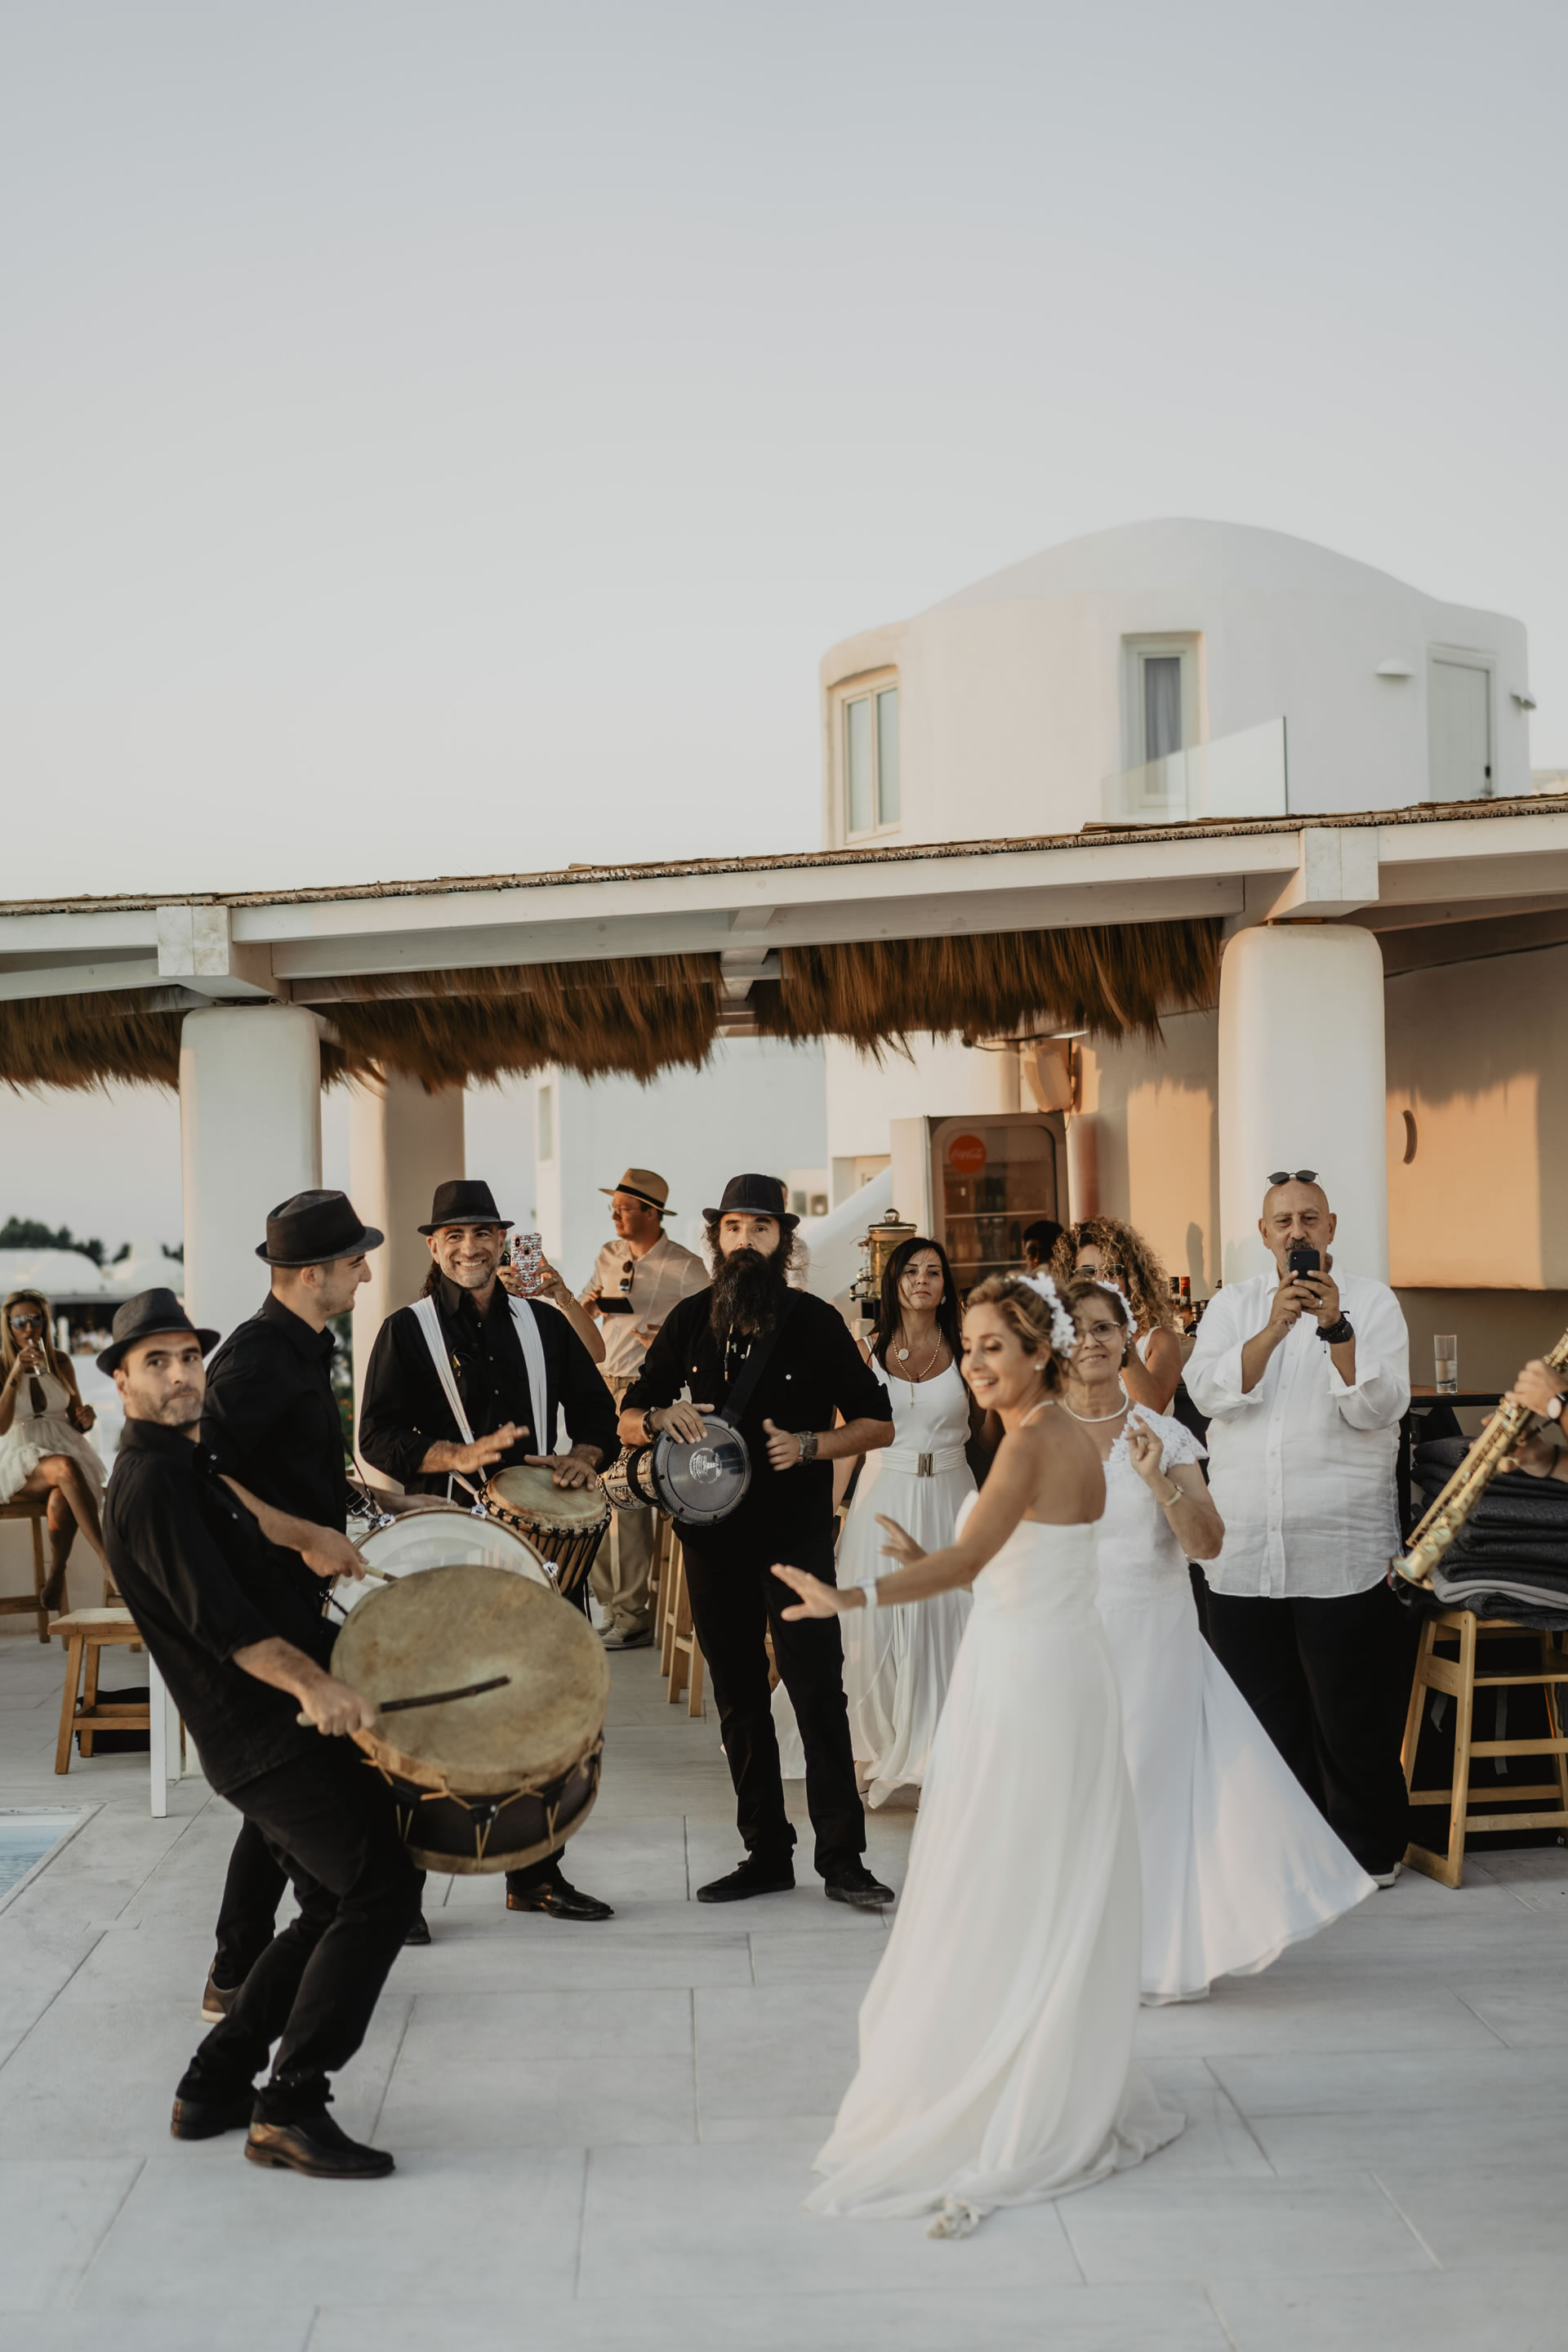 - 46 :: Santorini, a white wedding in a white island :: Luxury wedding photography - 45 ::  - 46